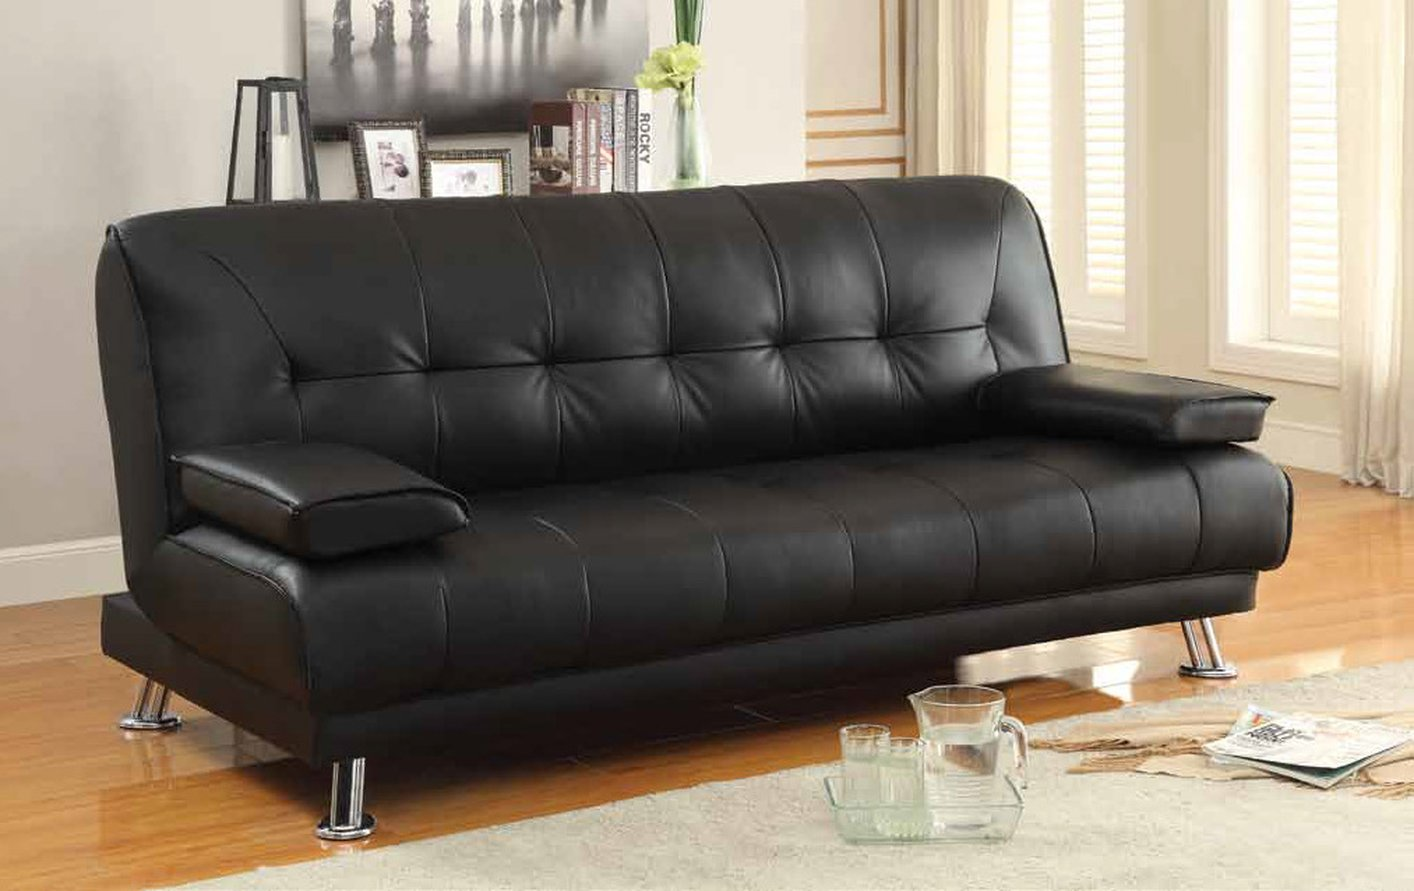 Cozy Black Leather Sofa Bed black leather sofa bed